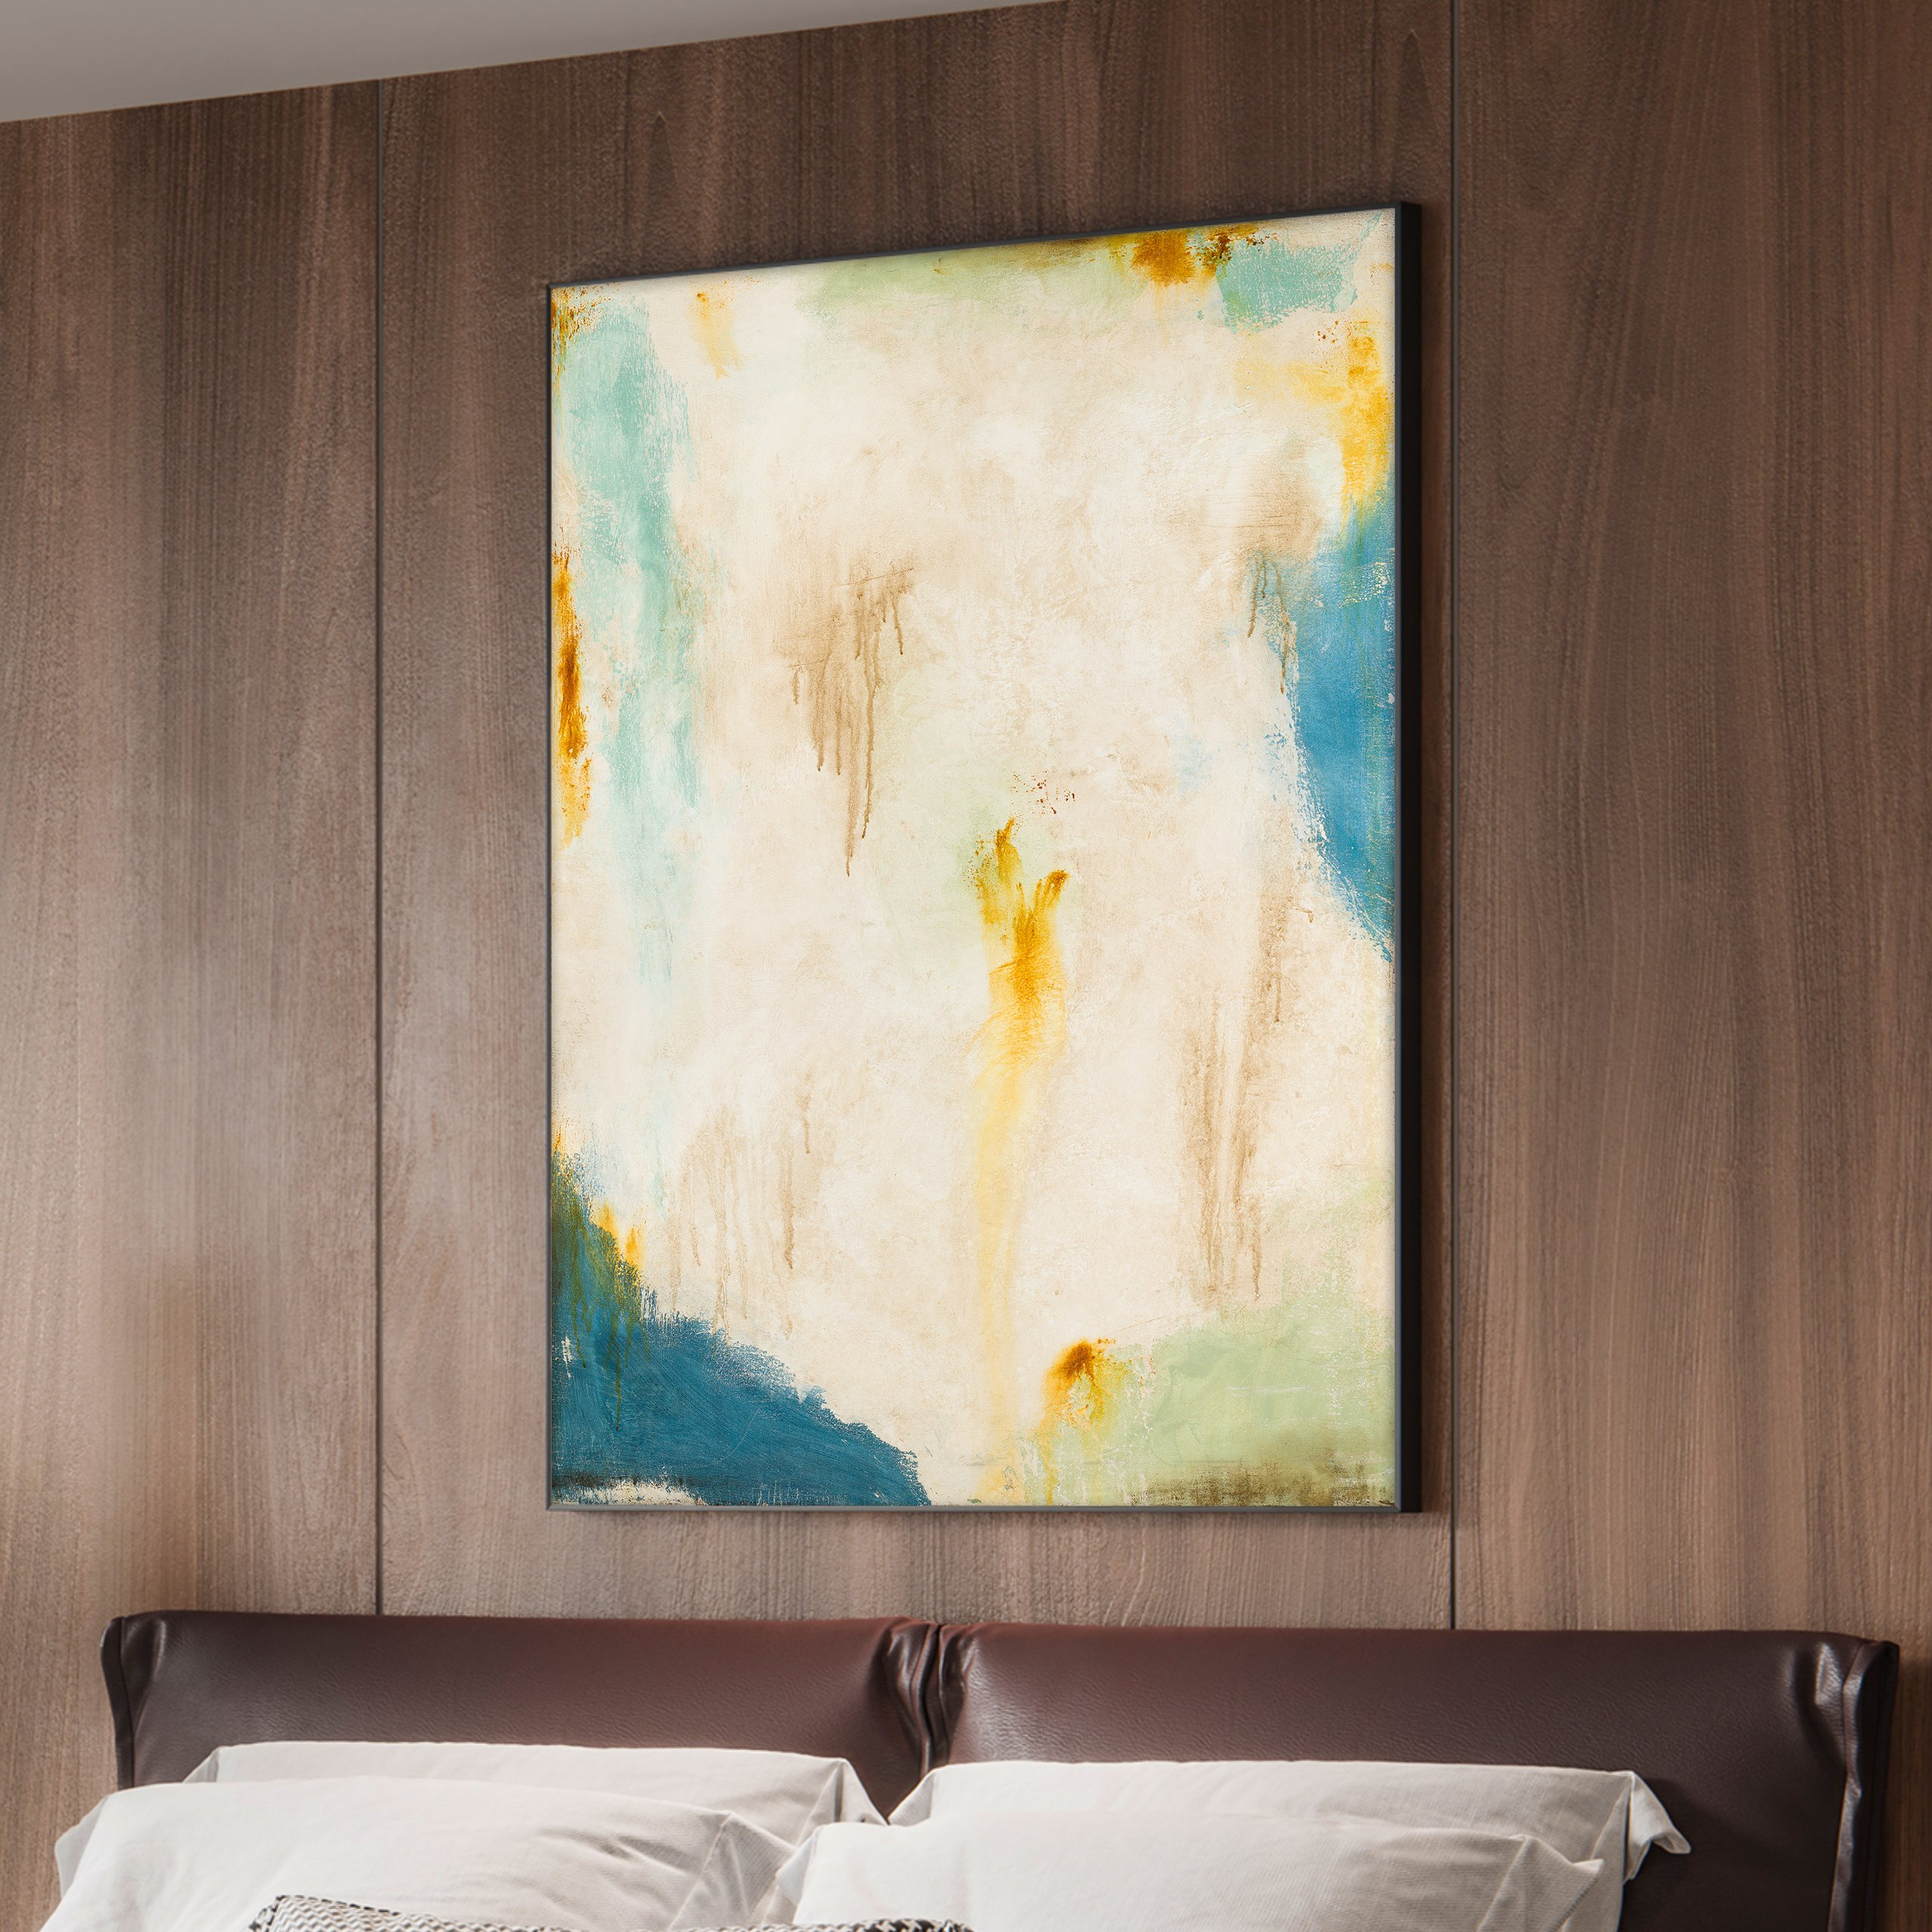 Abstract art in bedroom - wall decor